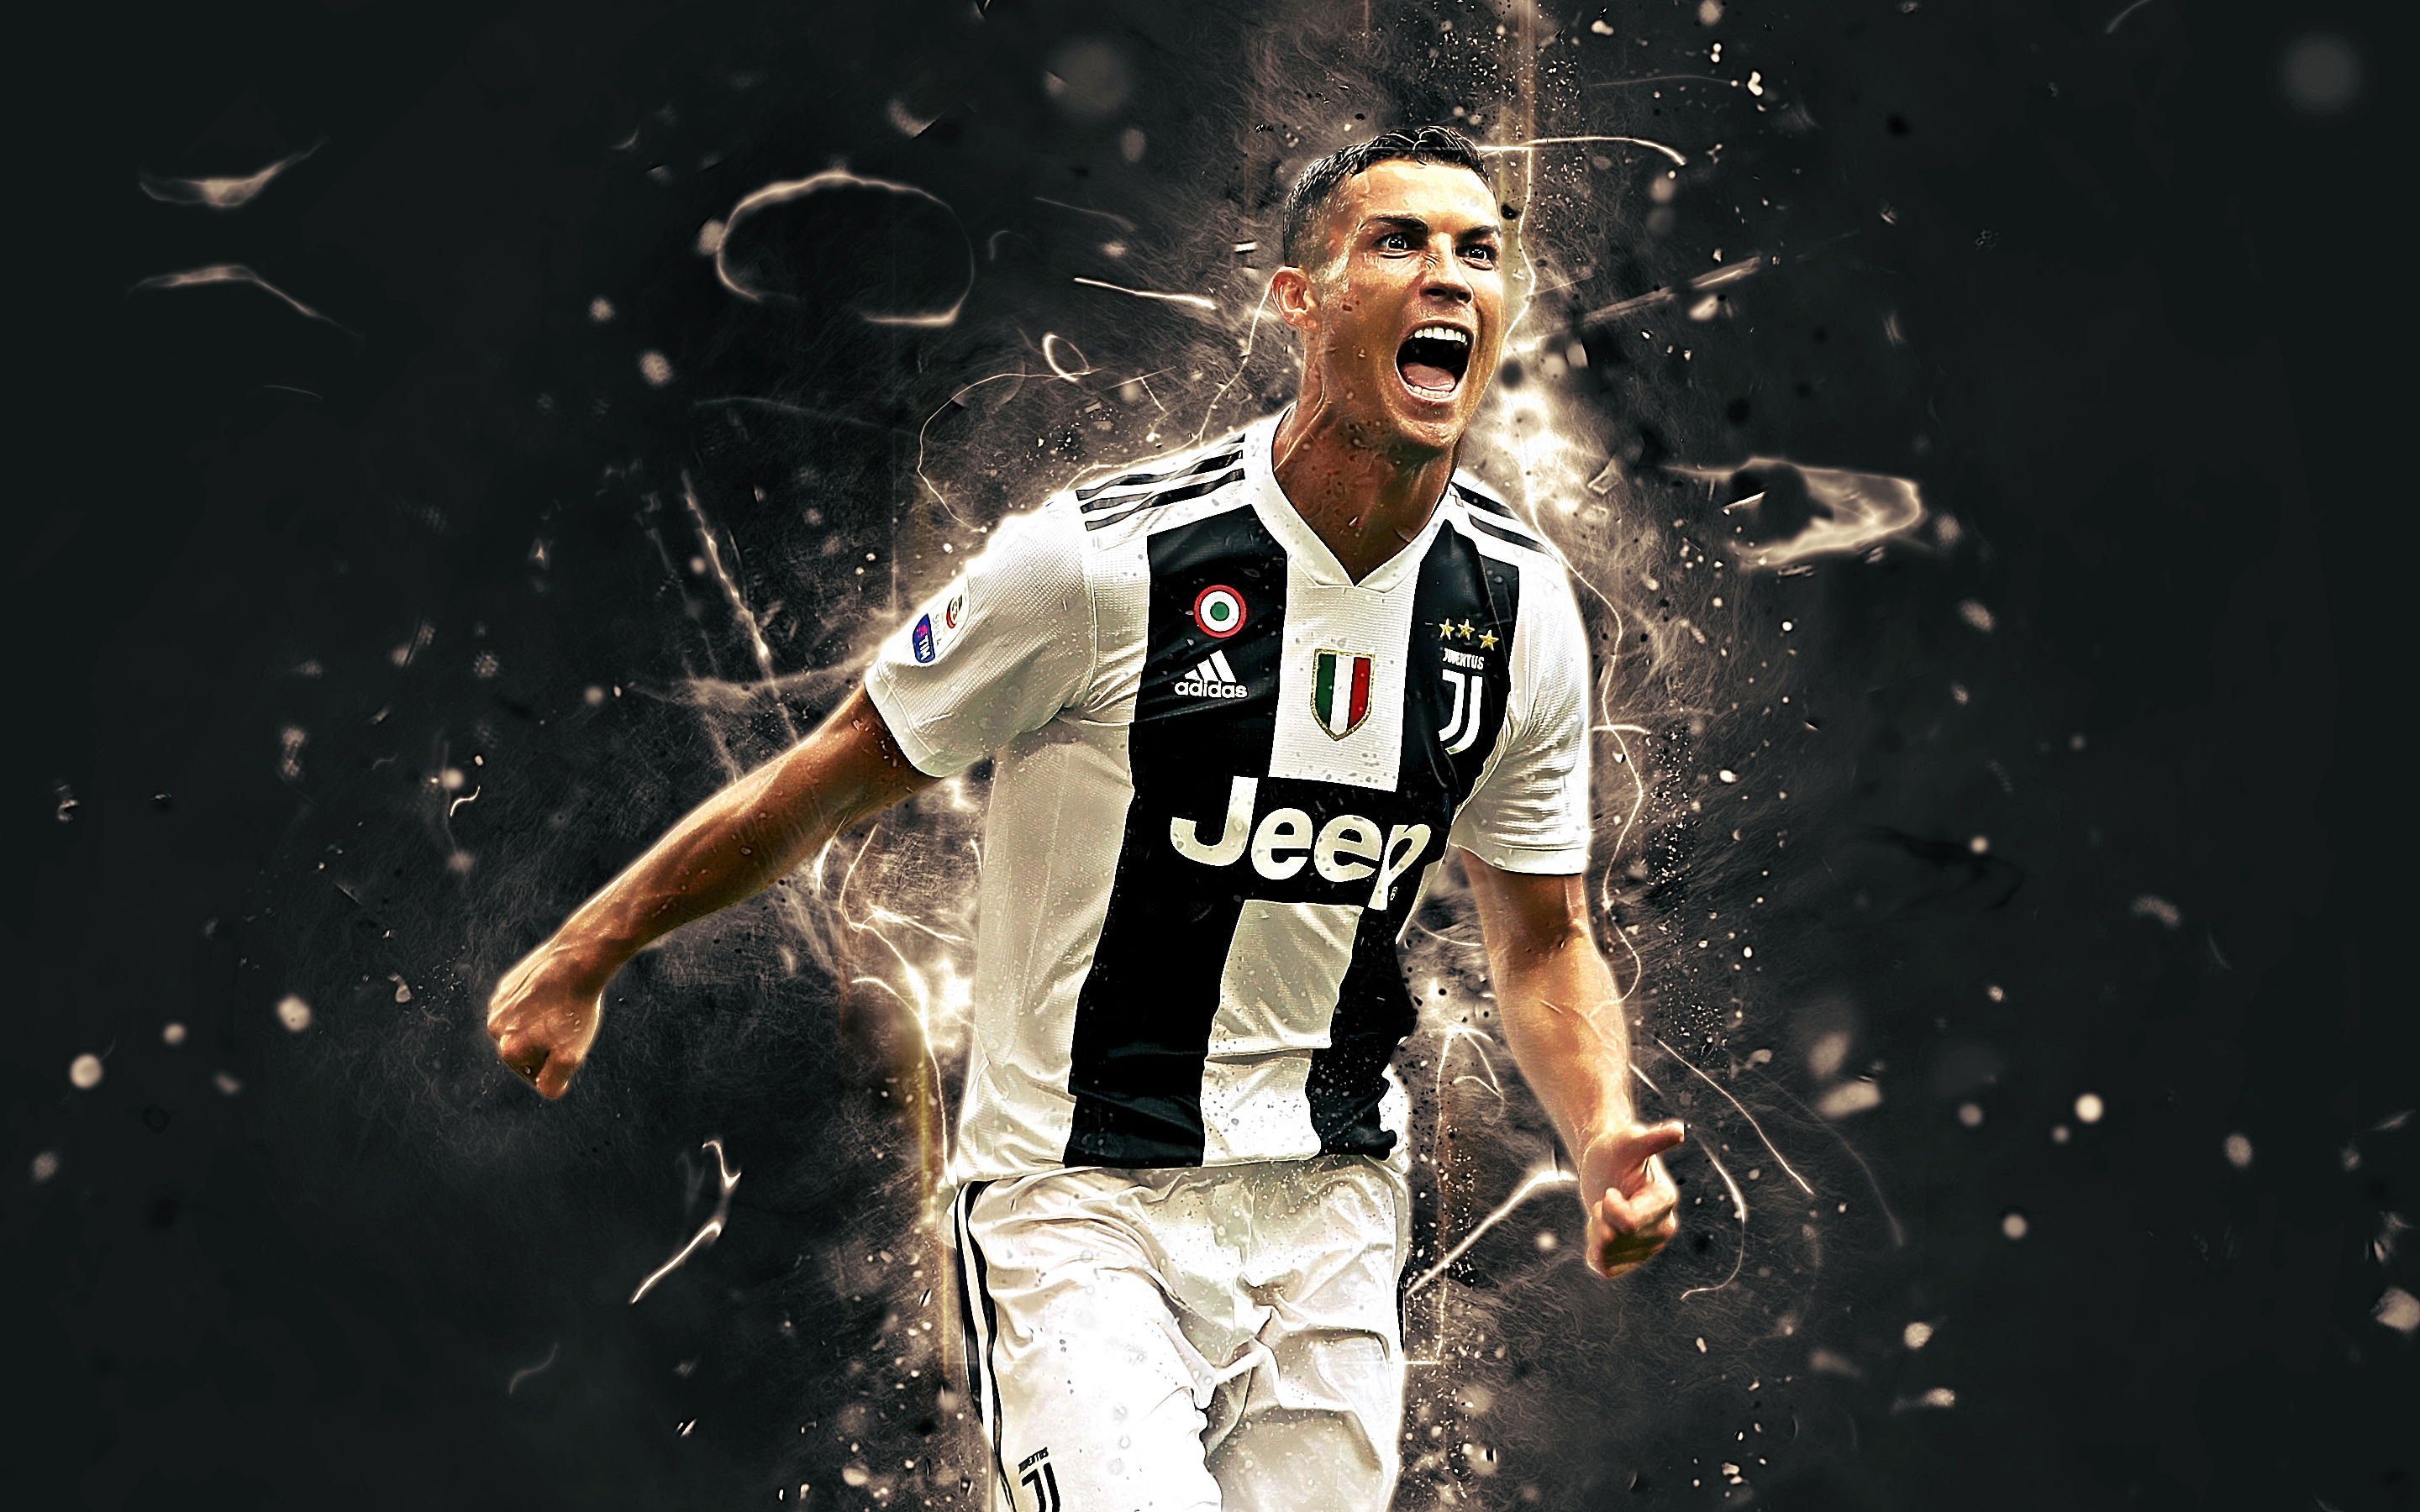 Art Of Cristiano Ronaldo Fans Wallpaper Sport Soccer: Cristiano Ronaldo - Juventus HD Wallpaper